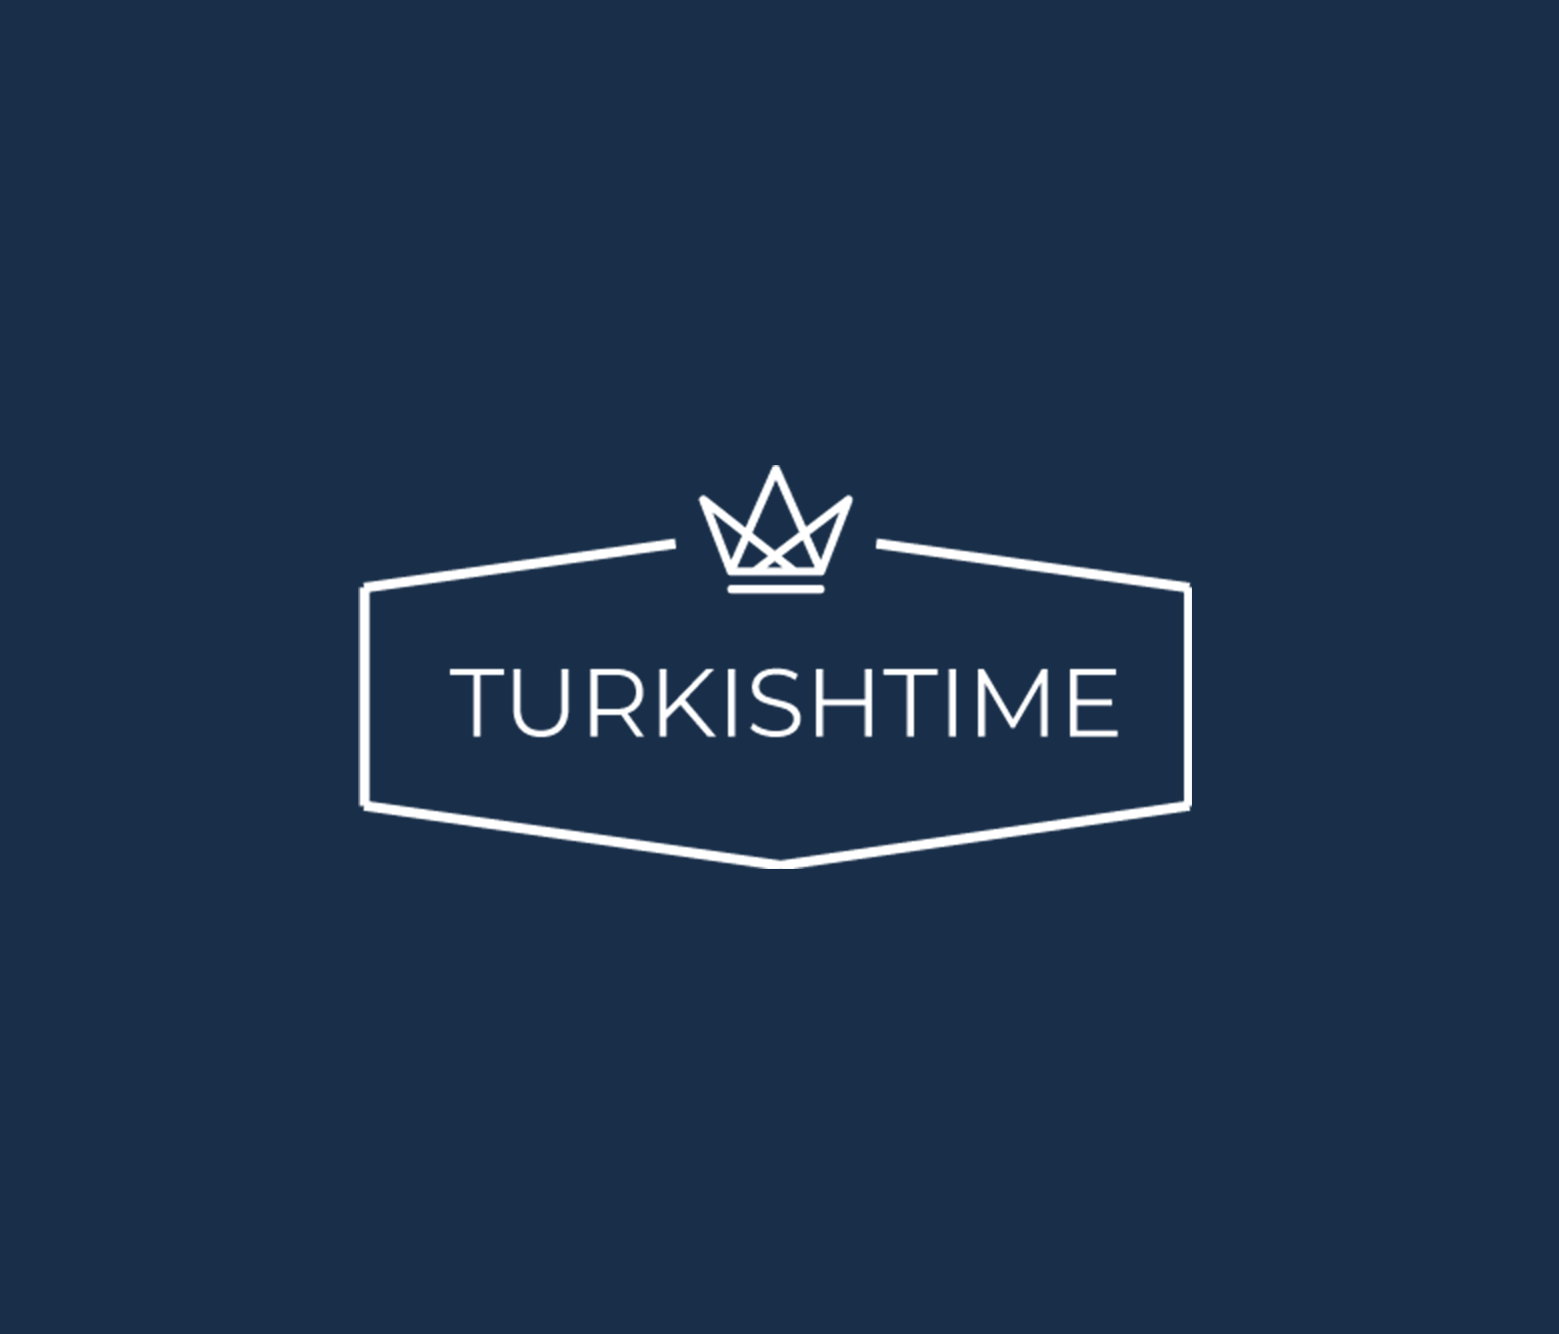 Epicerie turc en ligne Turkish Time